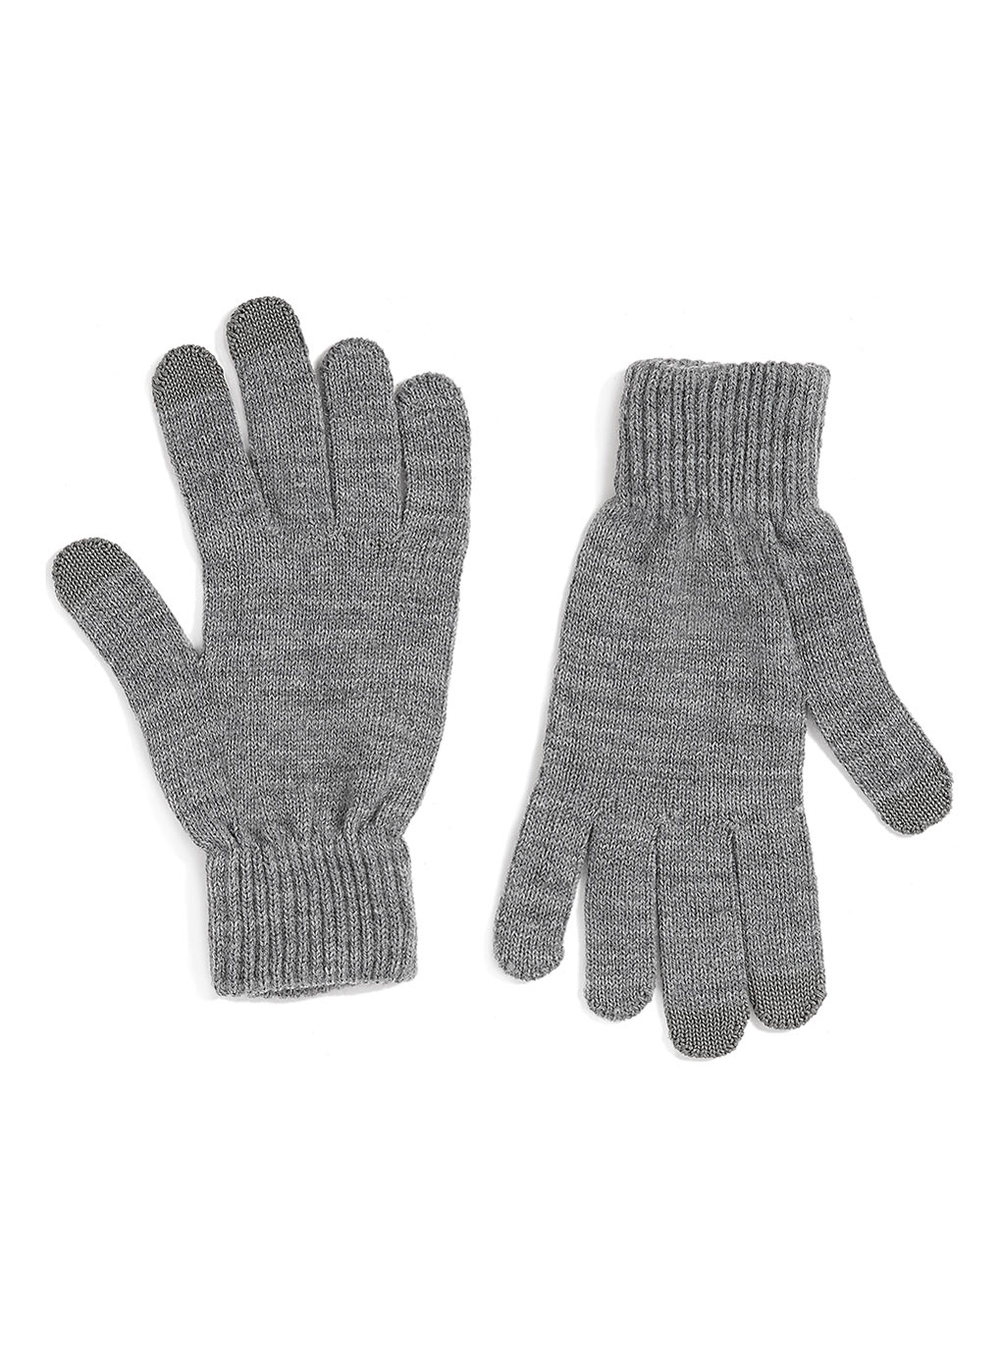 Mens gloves topman - Grey Touchscreen Gloves Was 12 Now 9 60